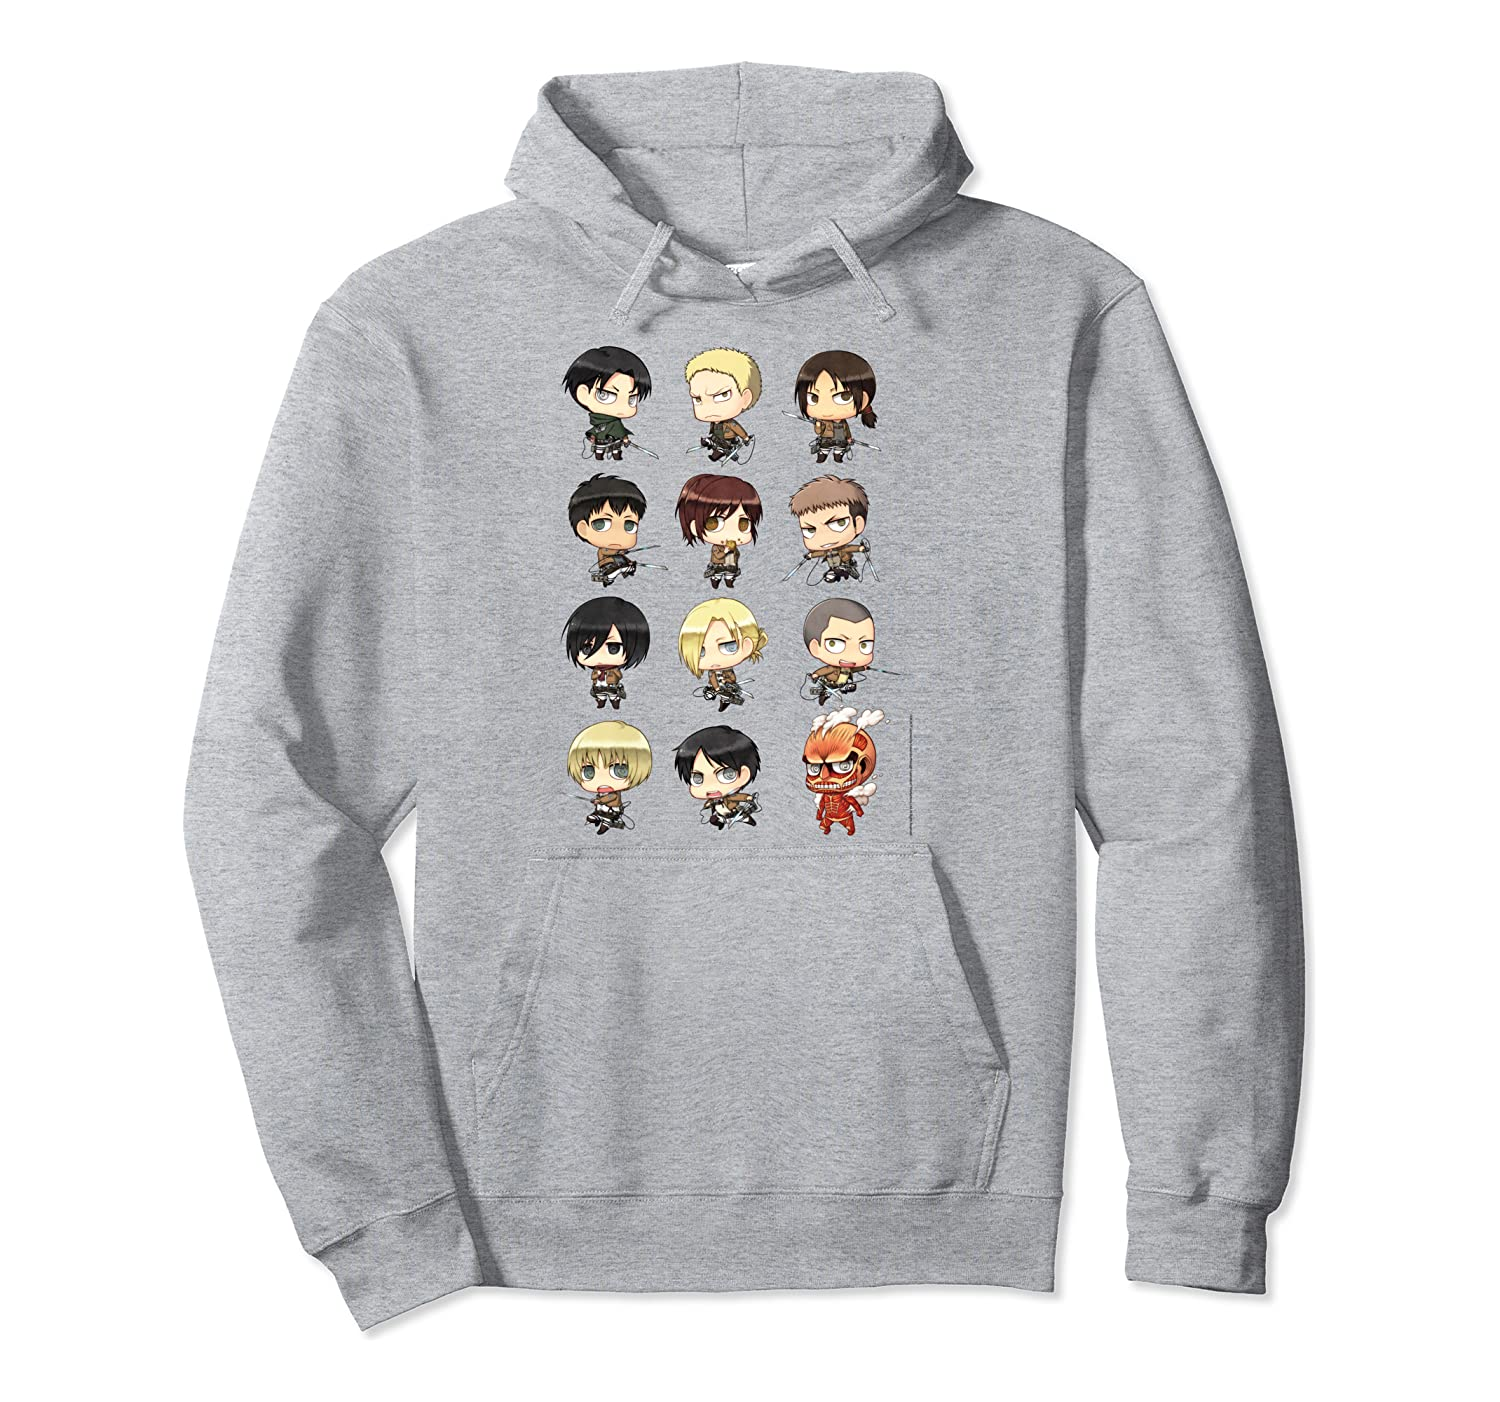 Attack on Titan Chibi All Characters Pullover Hoodie